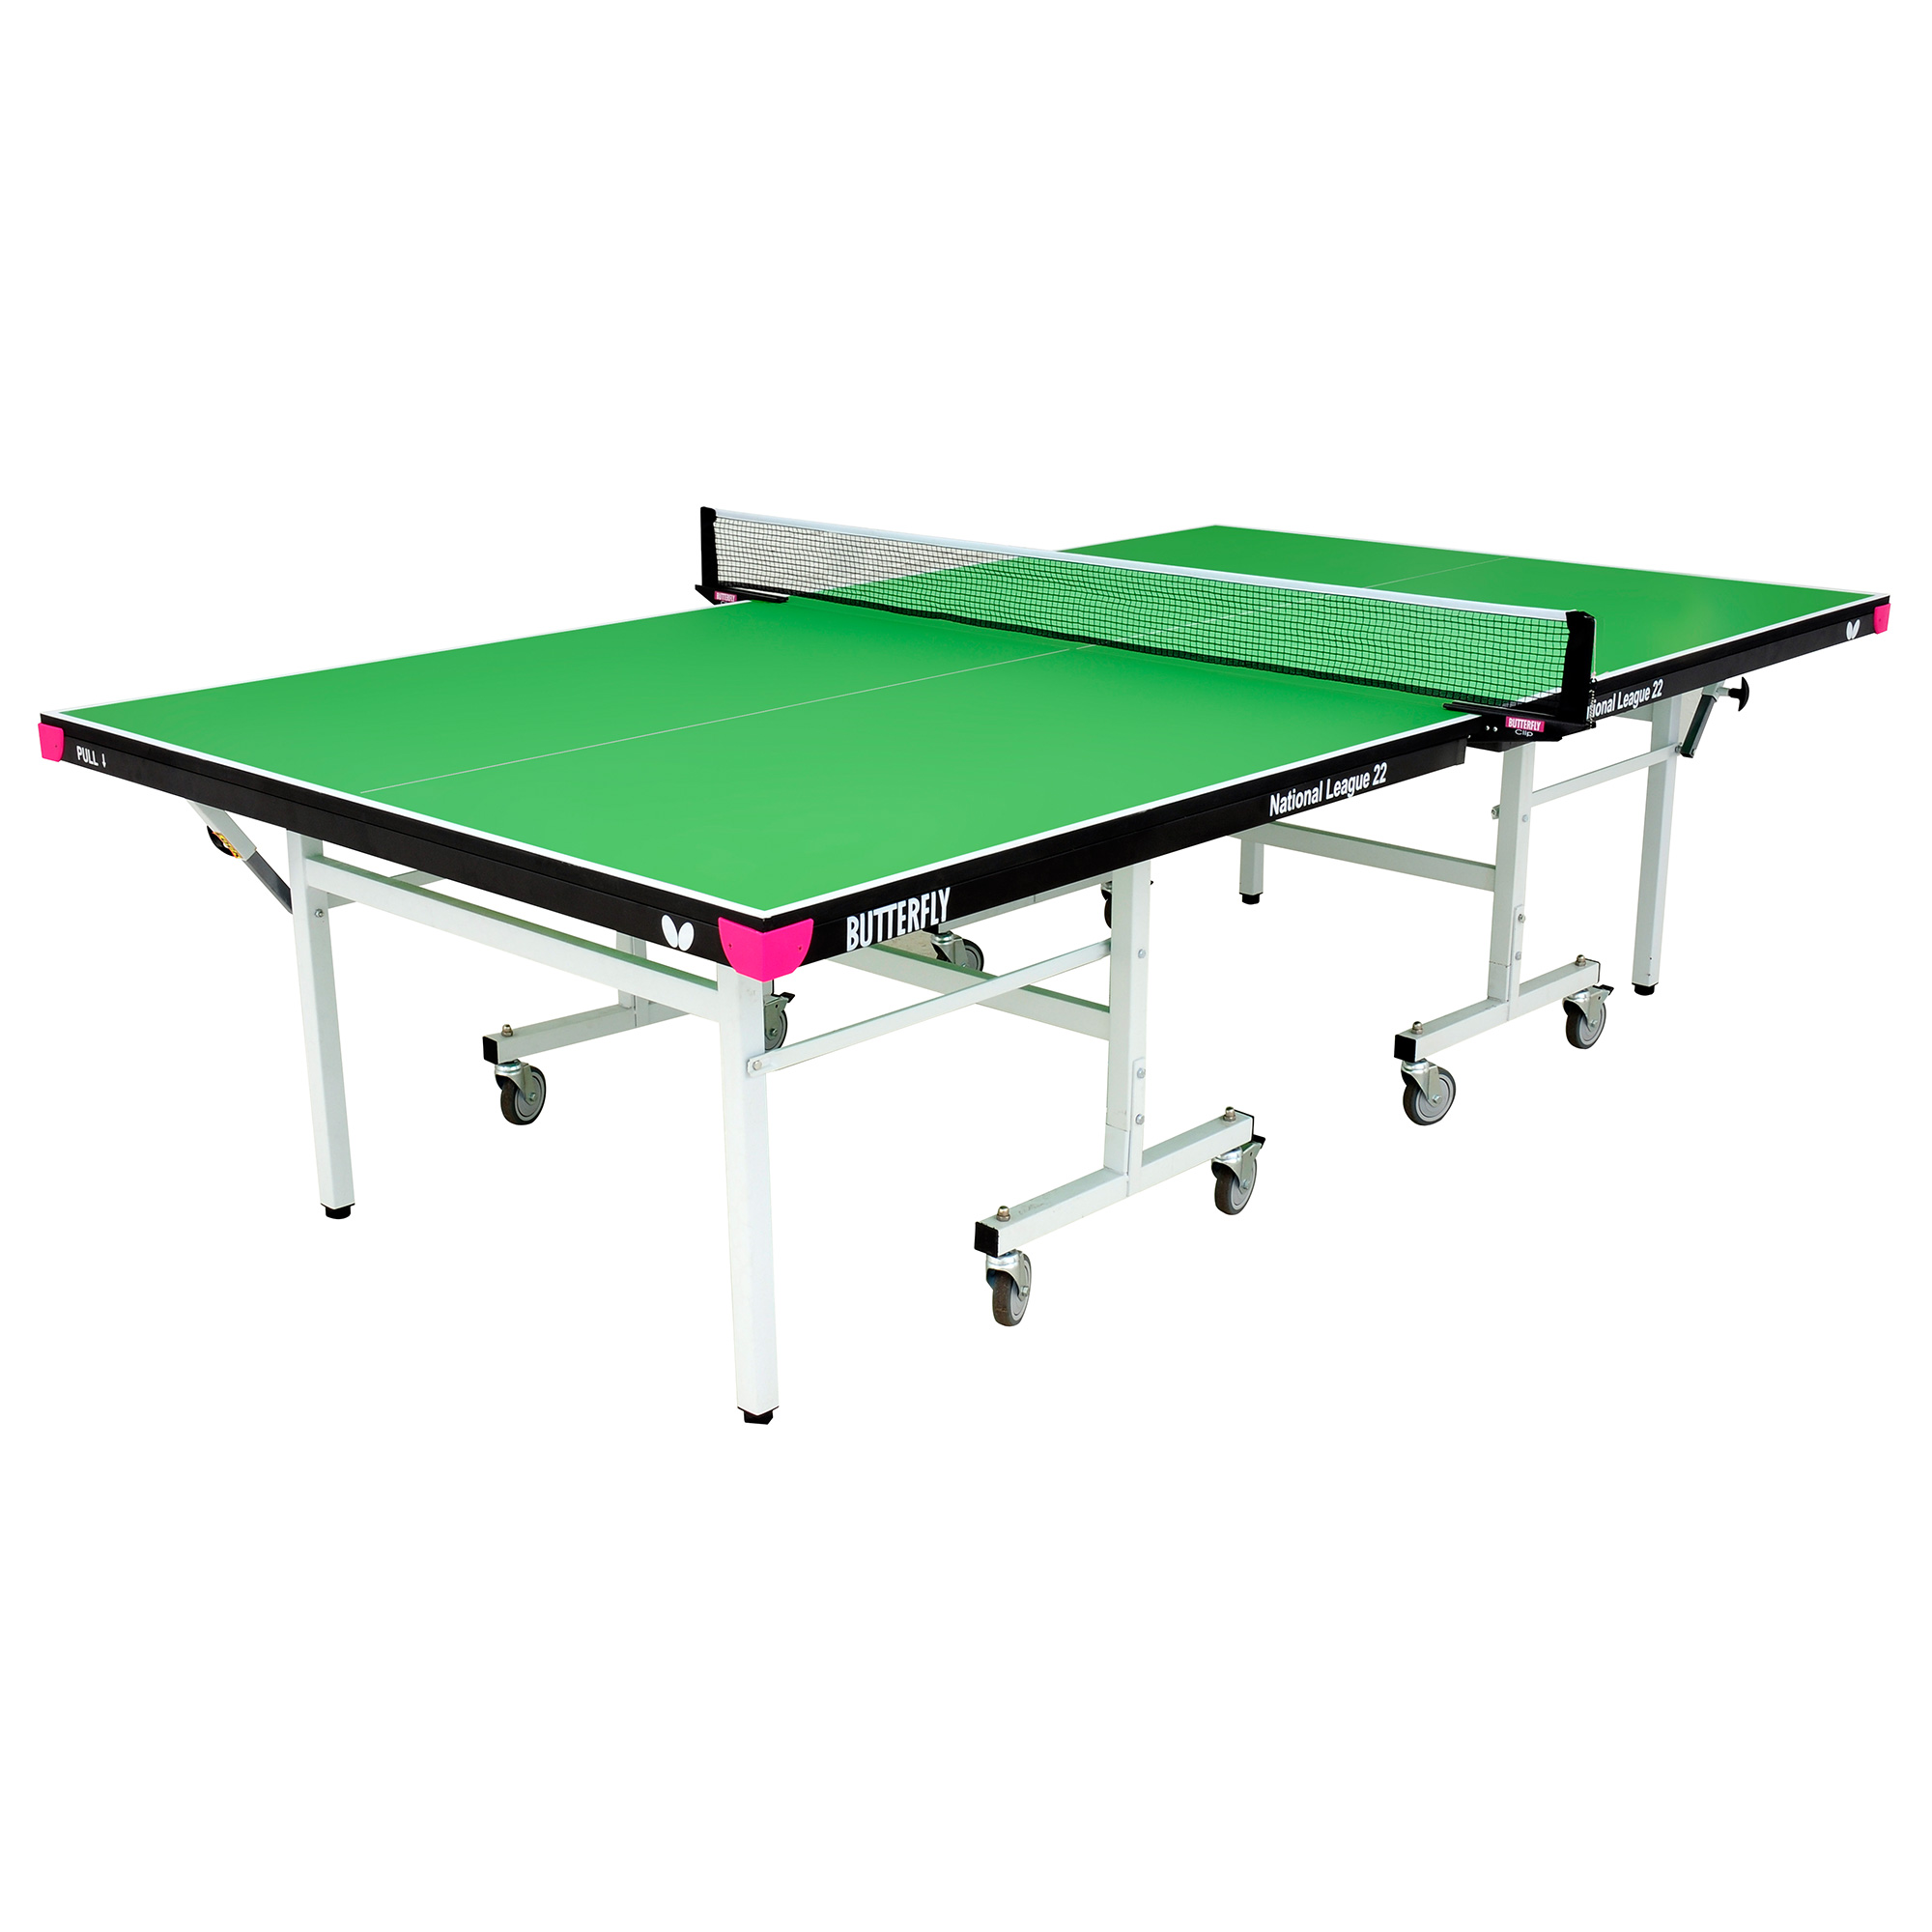 Butterfly National League 22 Rollaway Indoor Table Tennis Table  Green